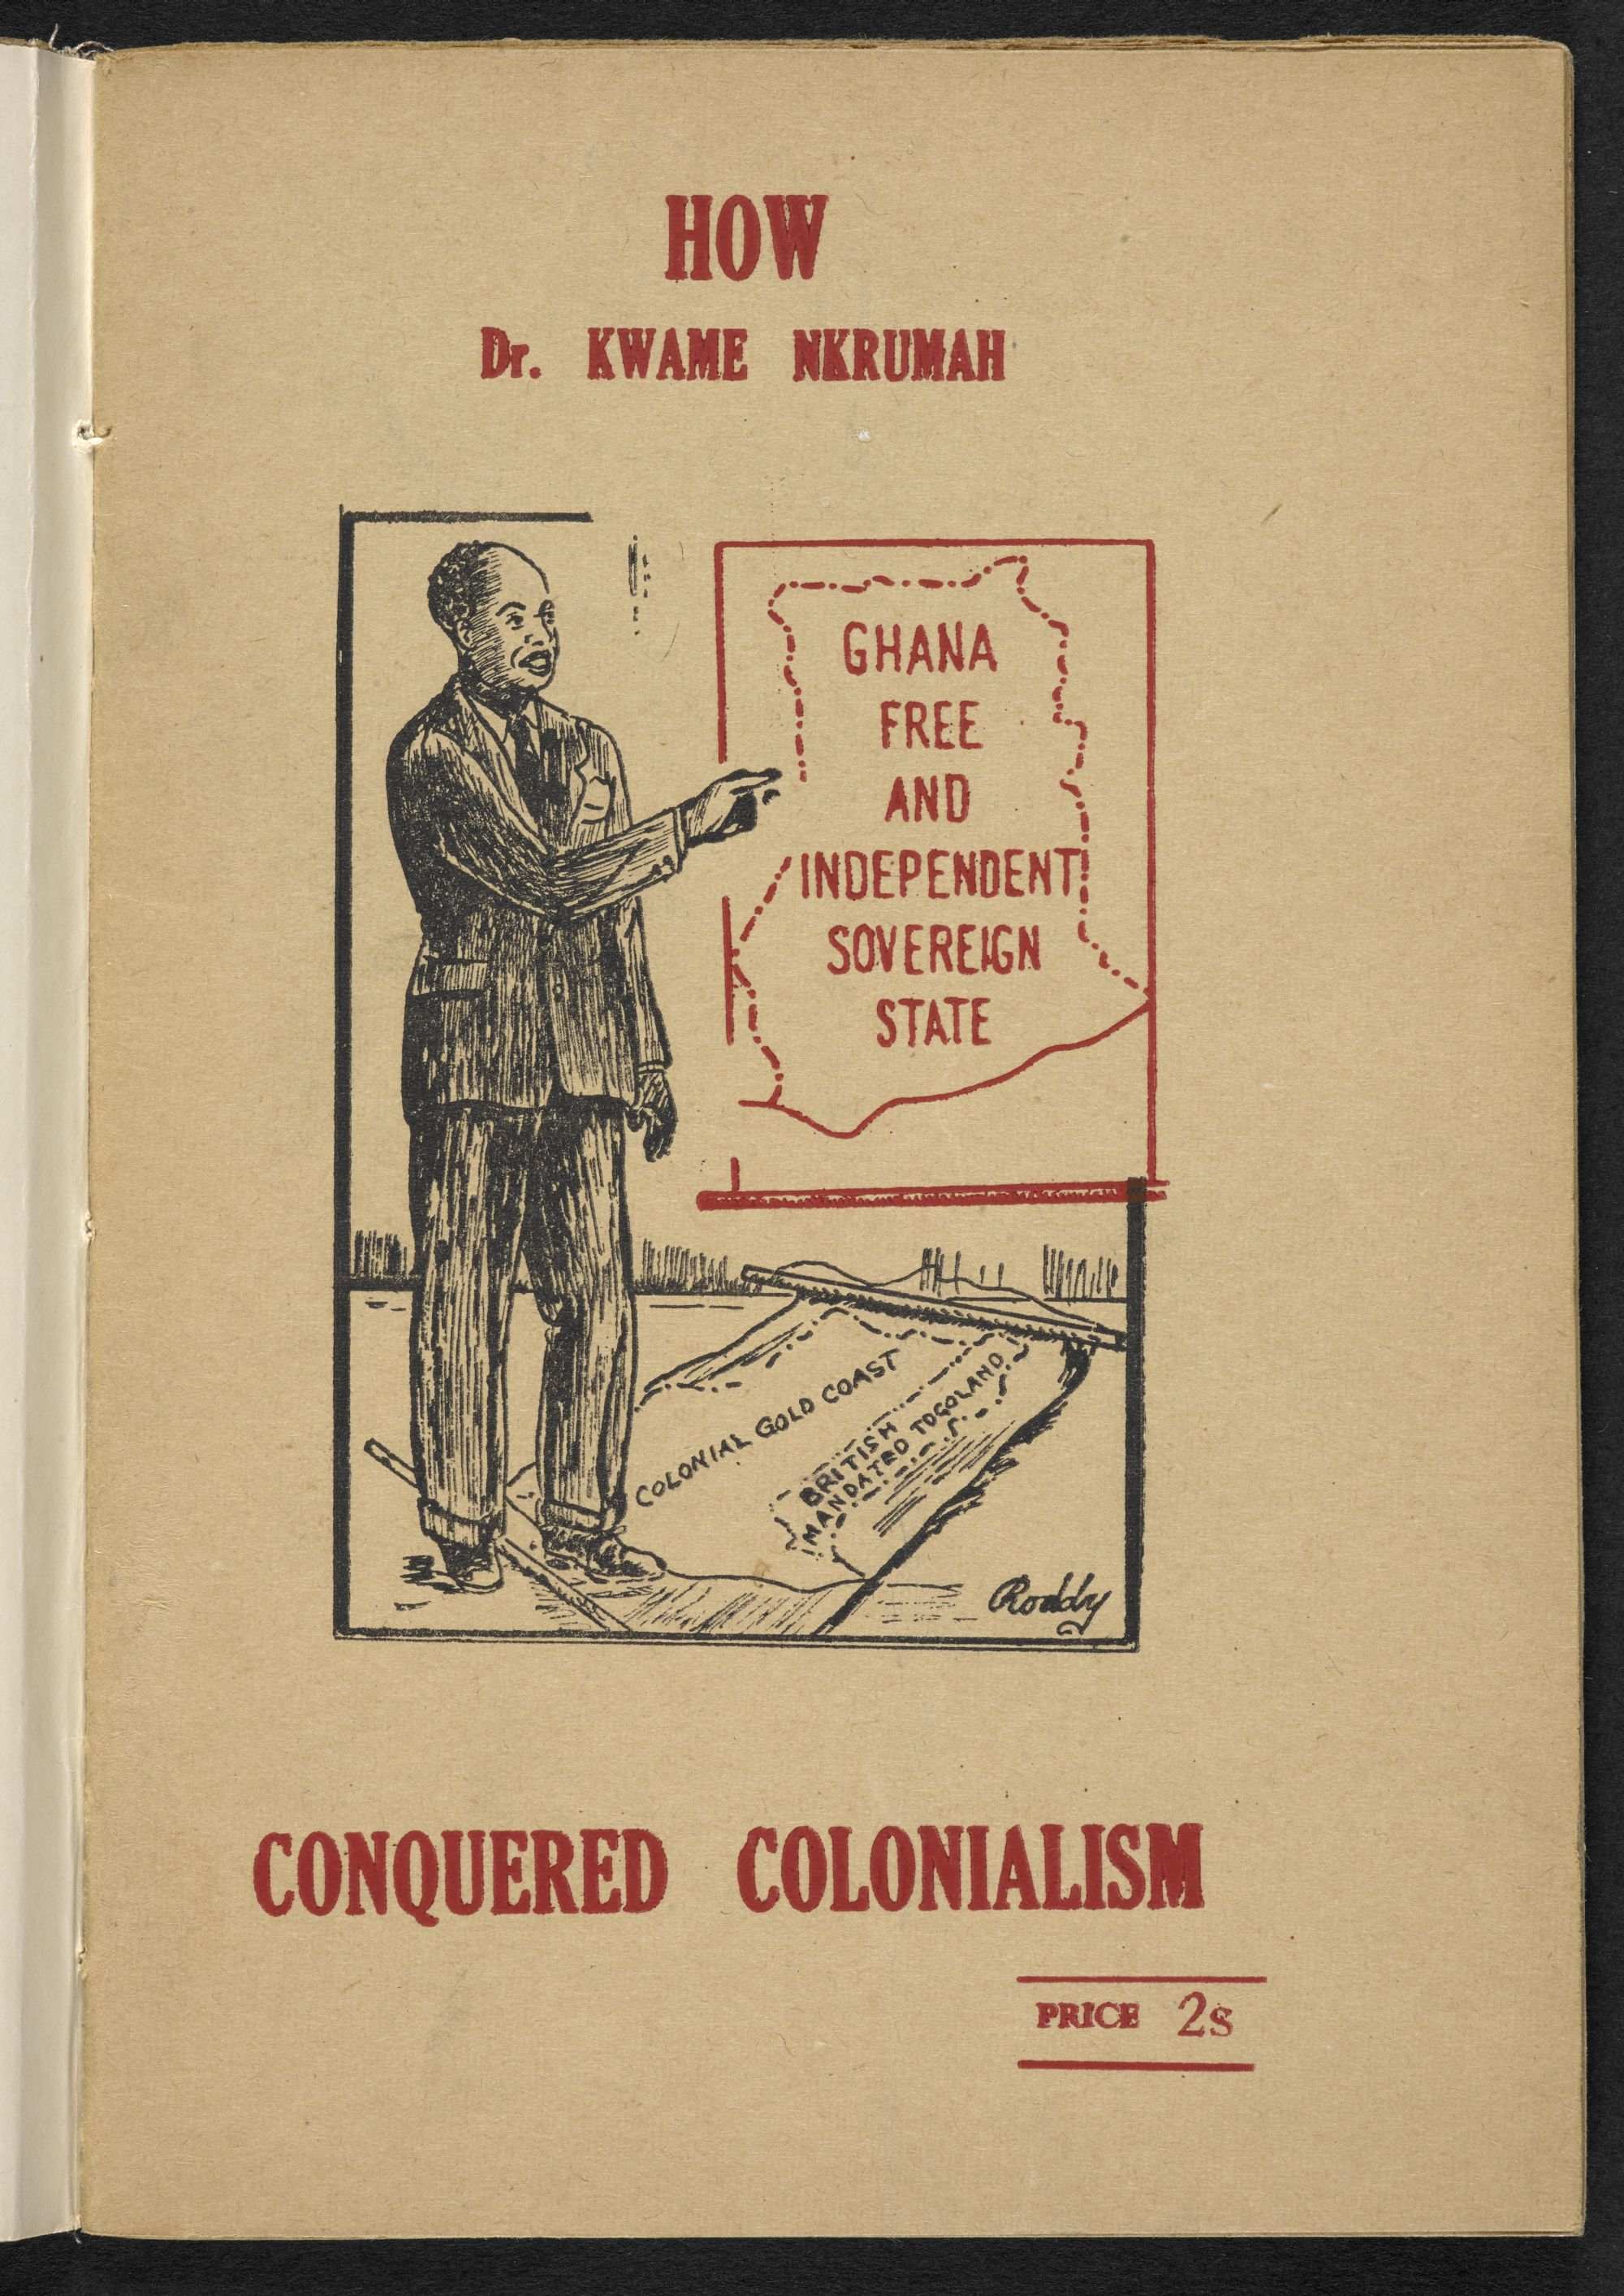 This political pamphlet attests to the wide influence of Kwame Nkrumah (1909–72), Ghana's first president.